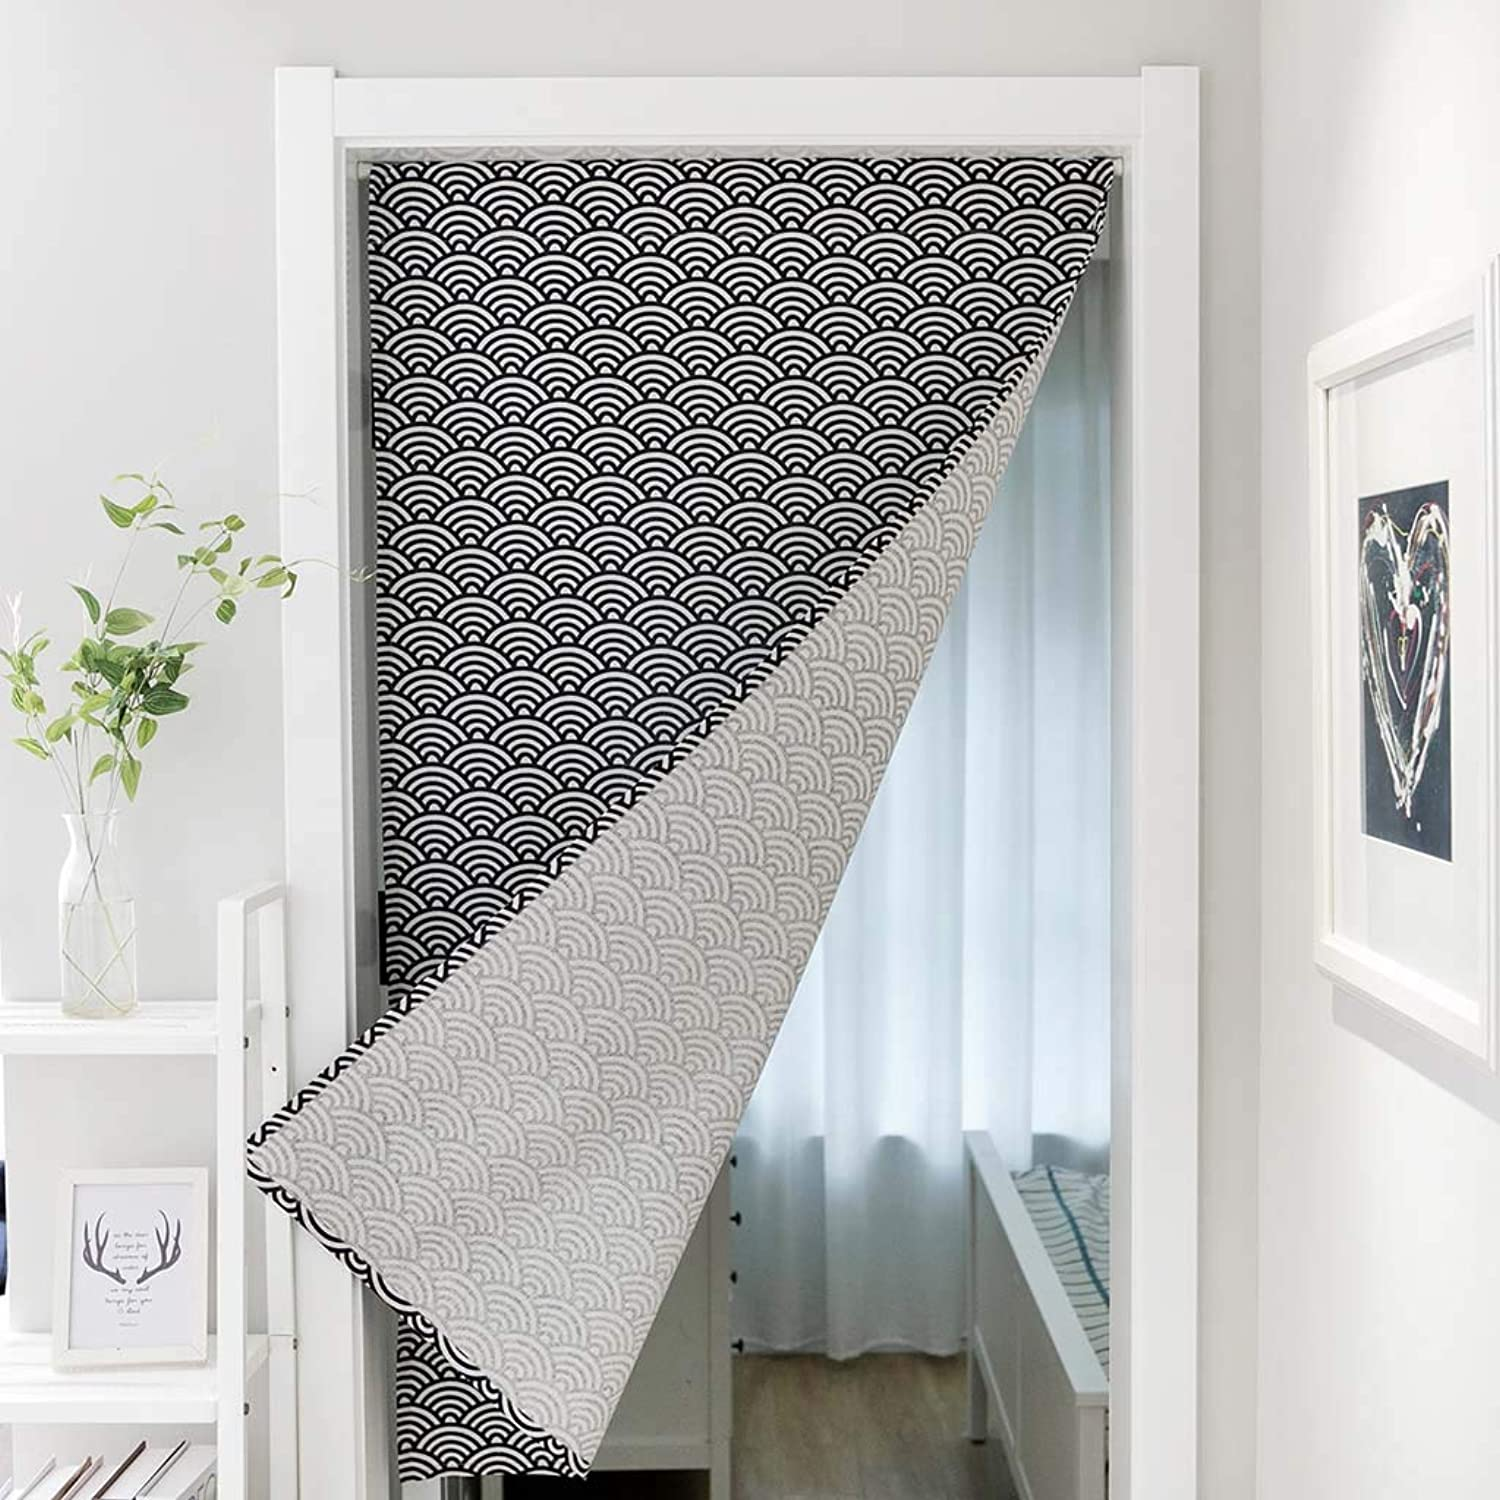 Partition Curtain Geometric Cotton Curtain Curtain Curtain partition Curtain Fabric Curtain,10,70  140